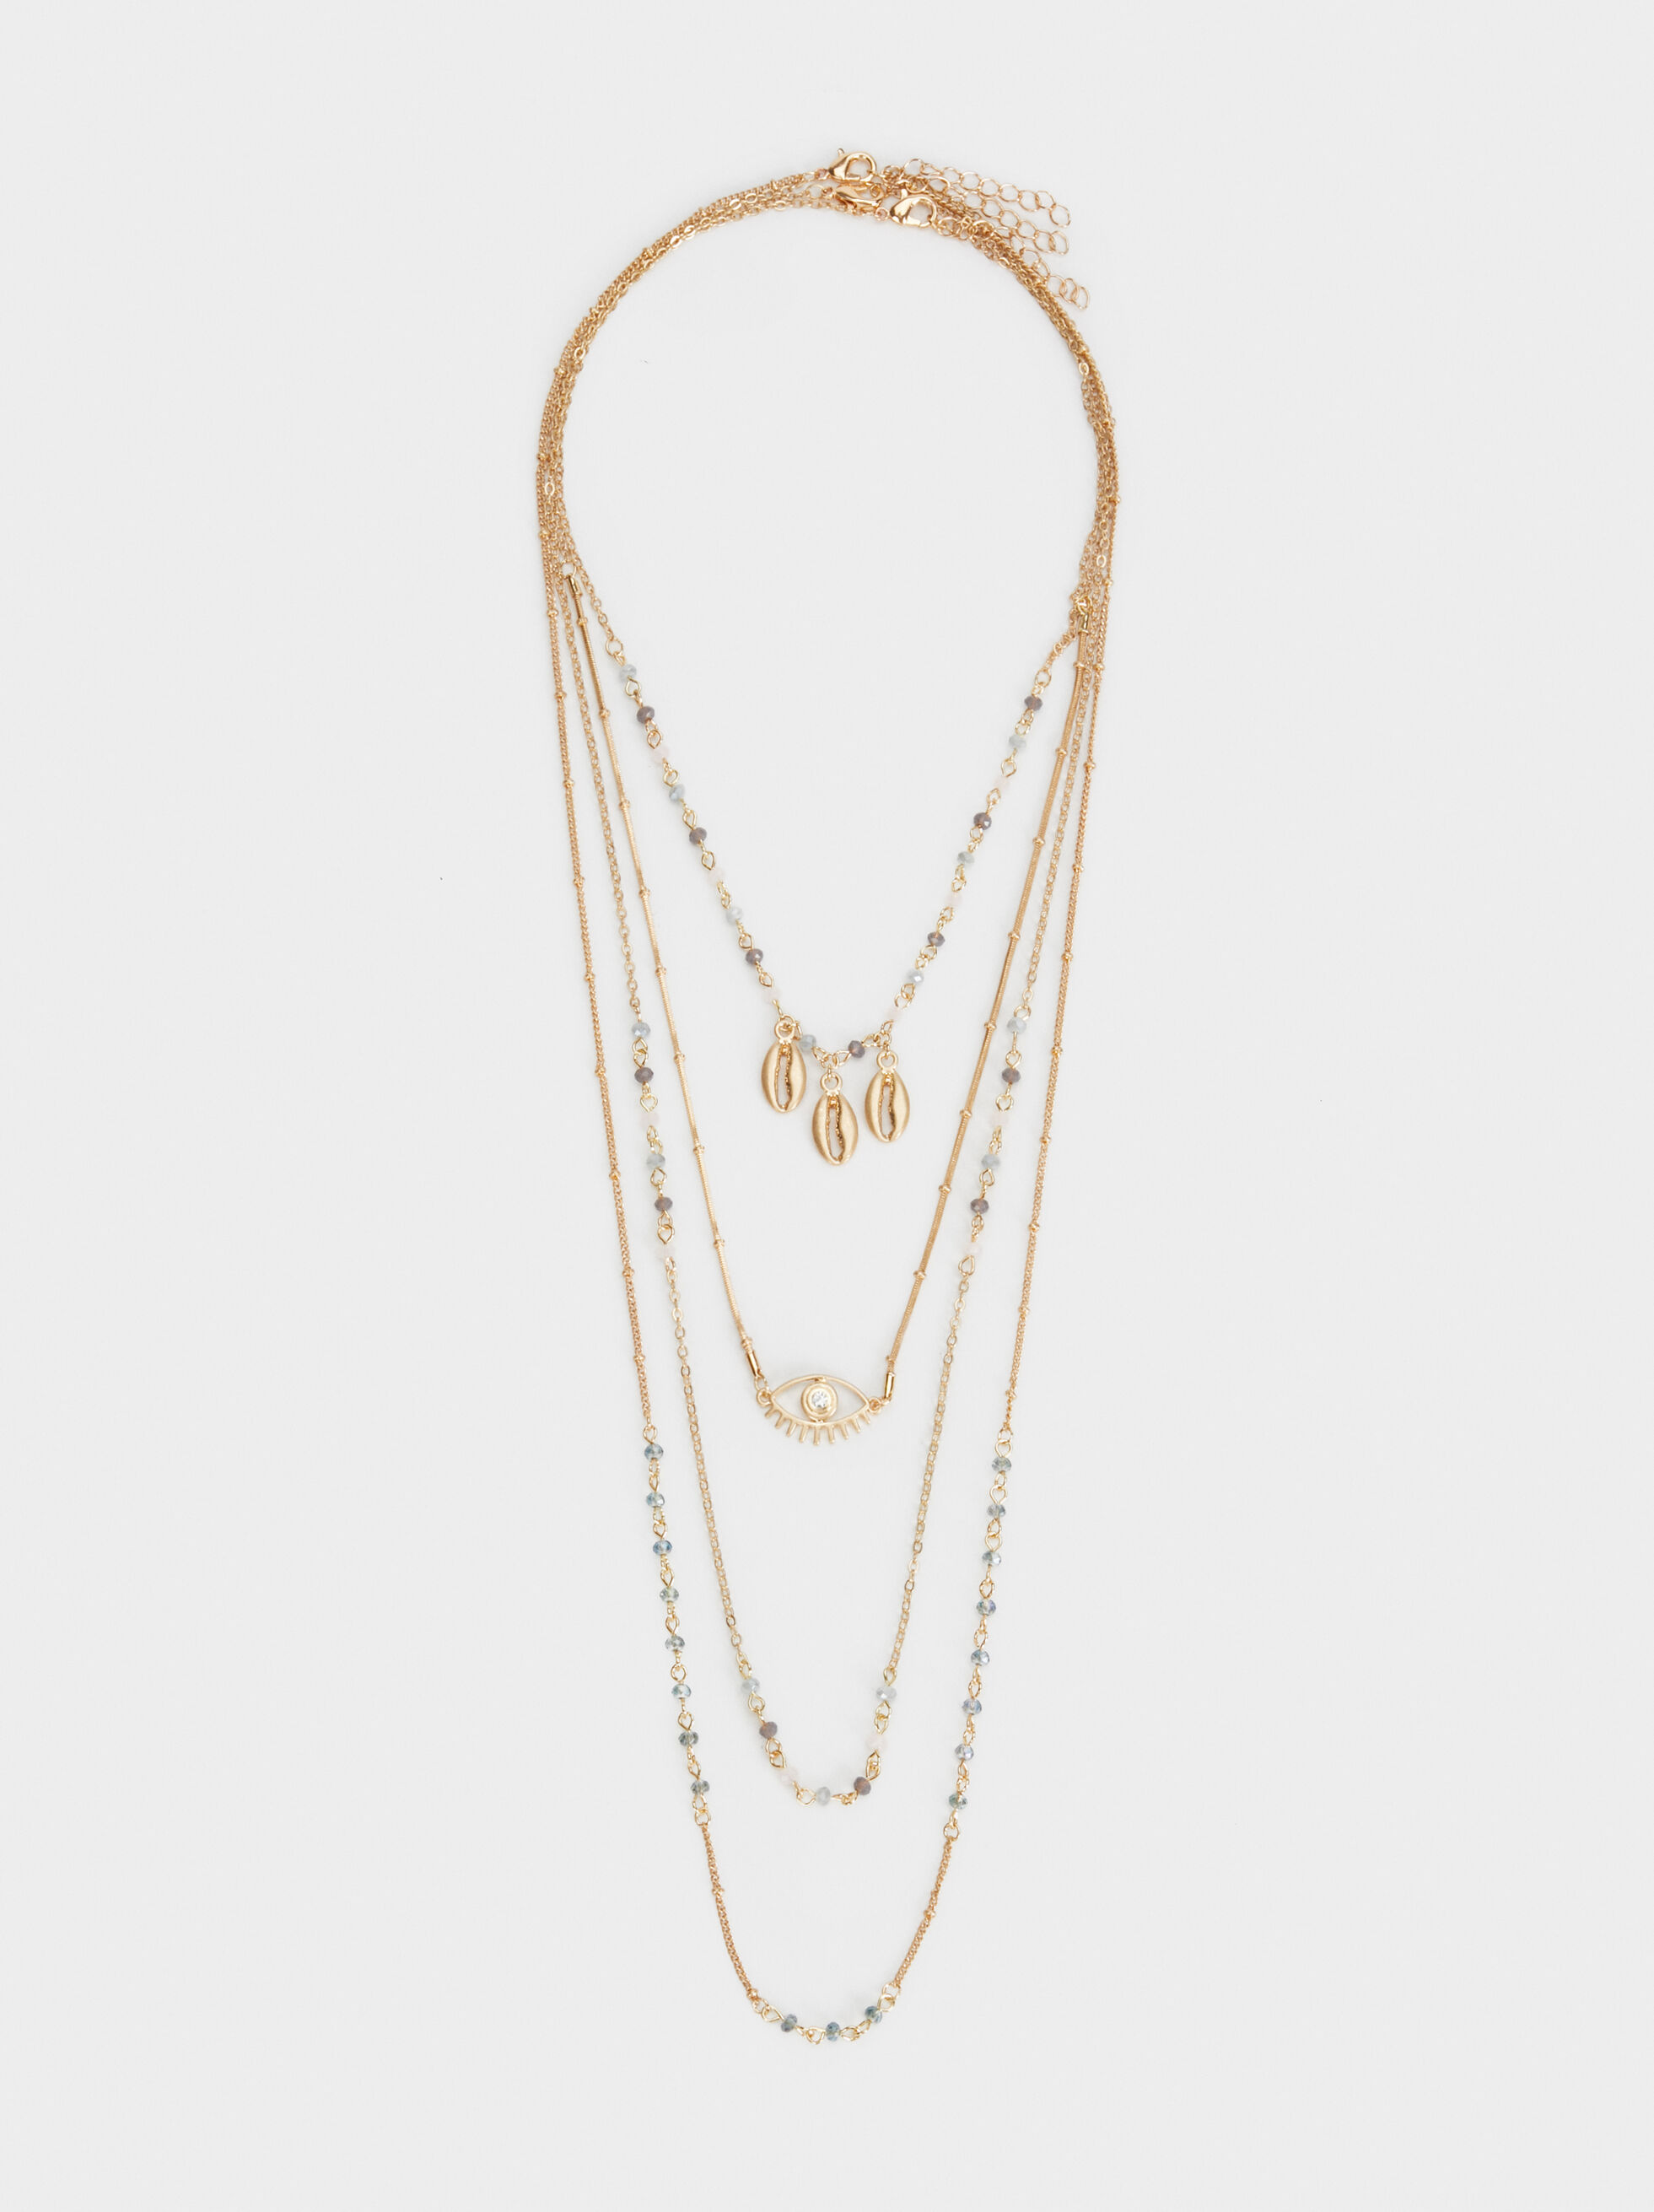 Triple-Strand Necklace With Pendants, , hi-res